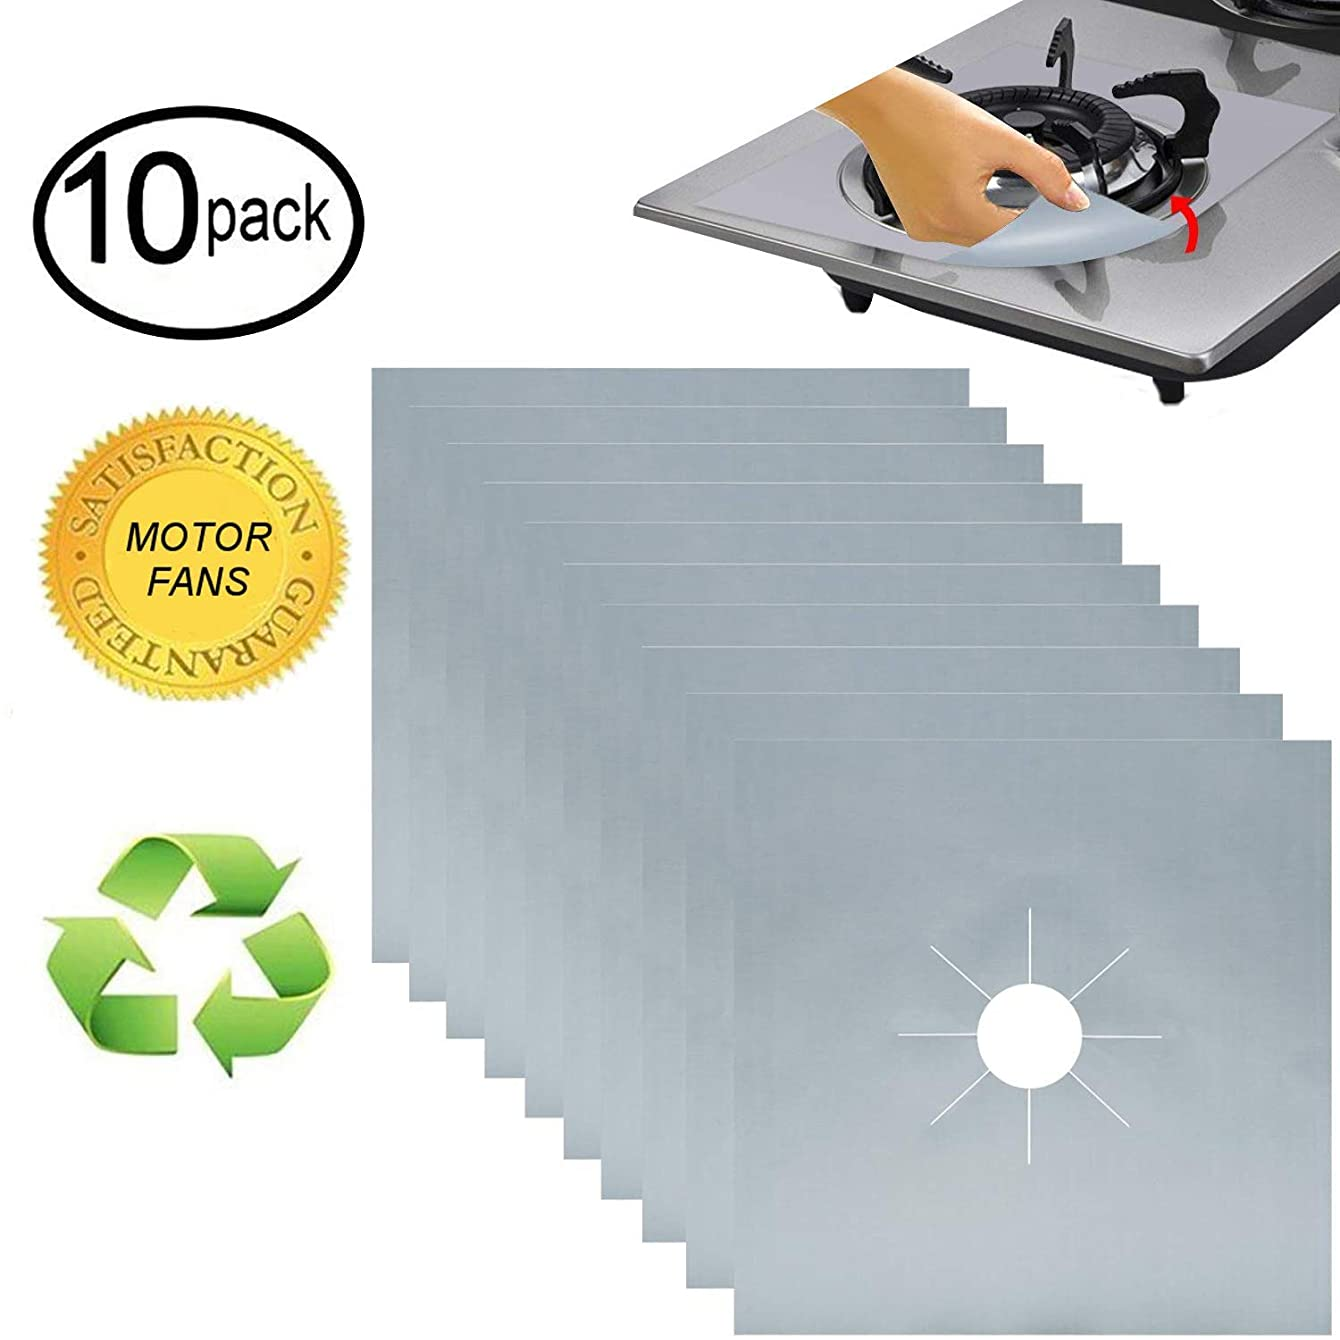 MOTORFANSCLUB 10 Packs Stove Burner Covers Gas Range Protectors Gas Cooktop Liner Cover Clean Mat Pad for Stove 0.2mm Double Thickness Gas Stove Cover for Kitchen Cooking, Dishwasher Safe Silver